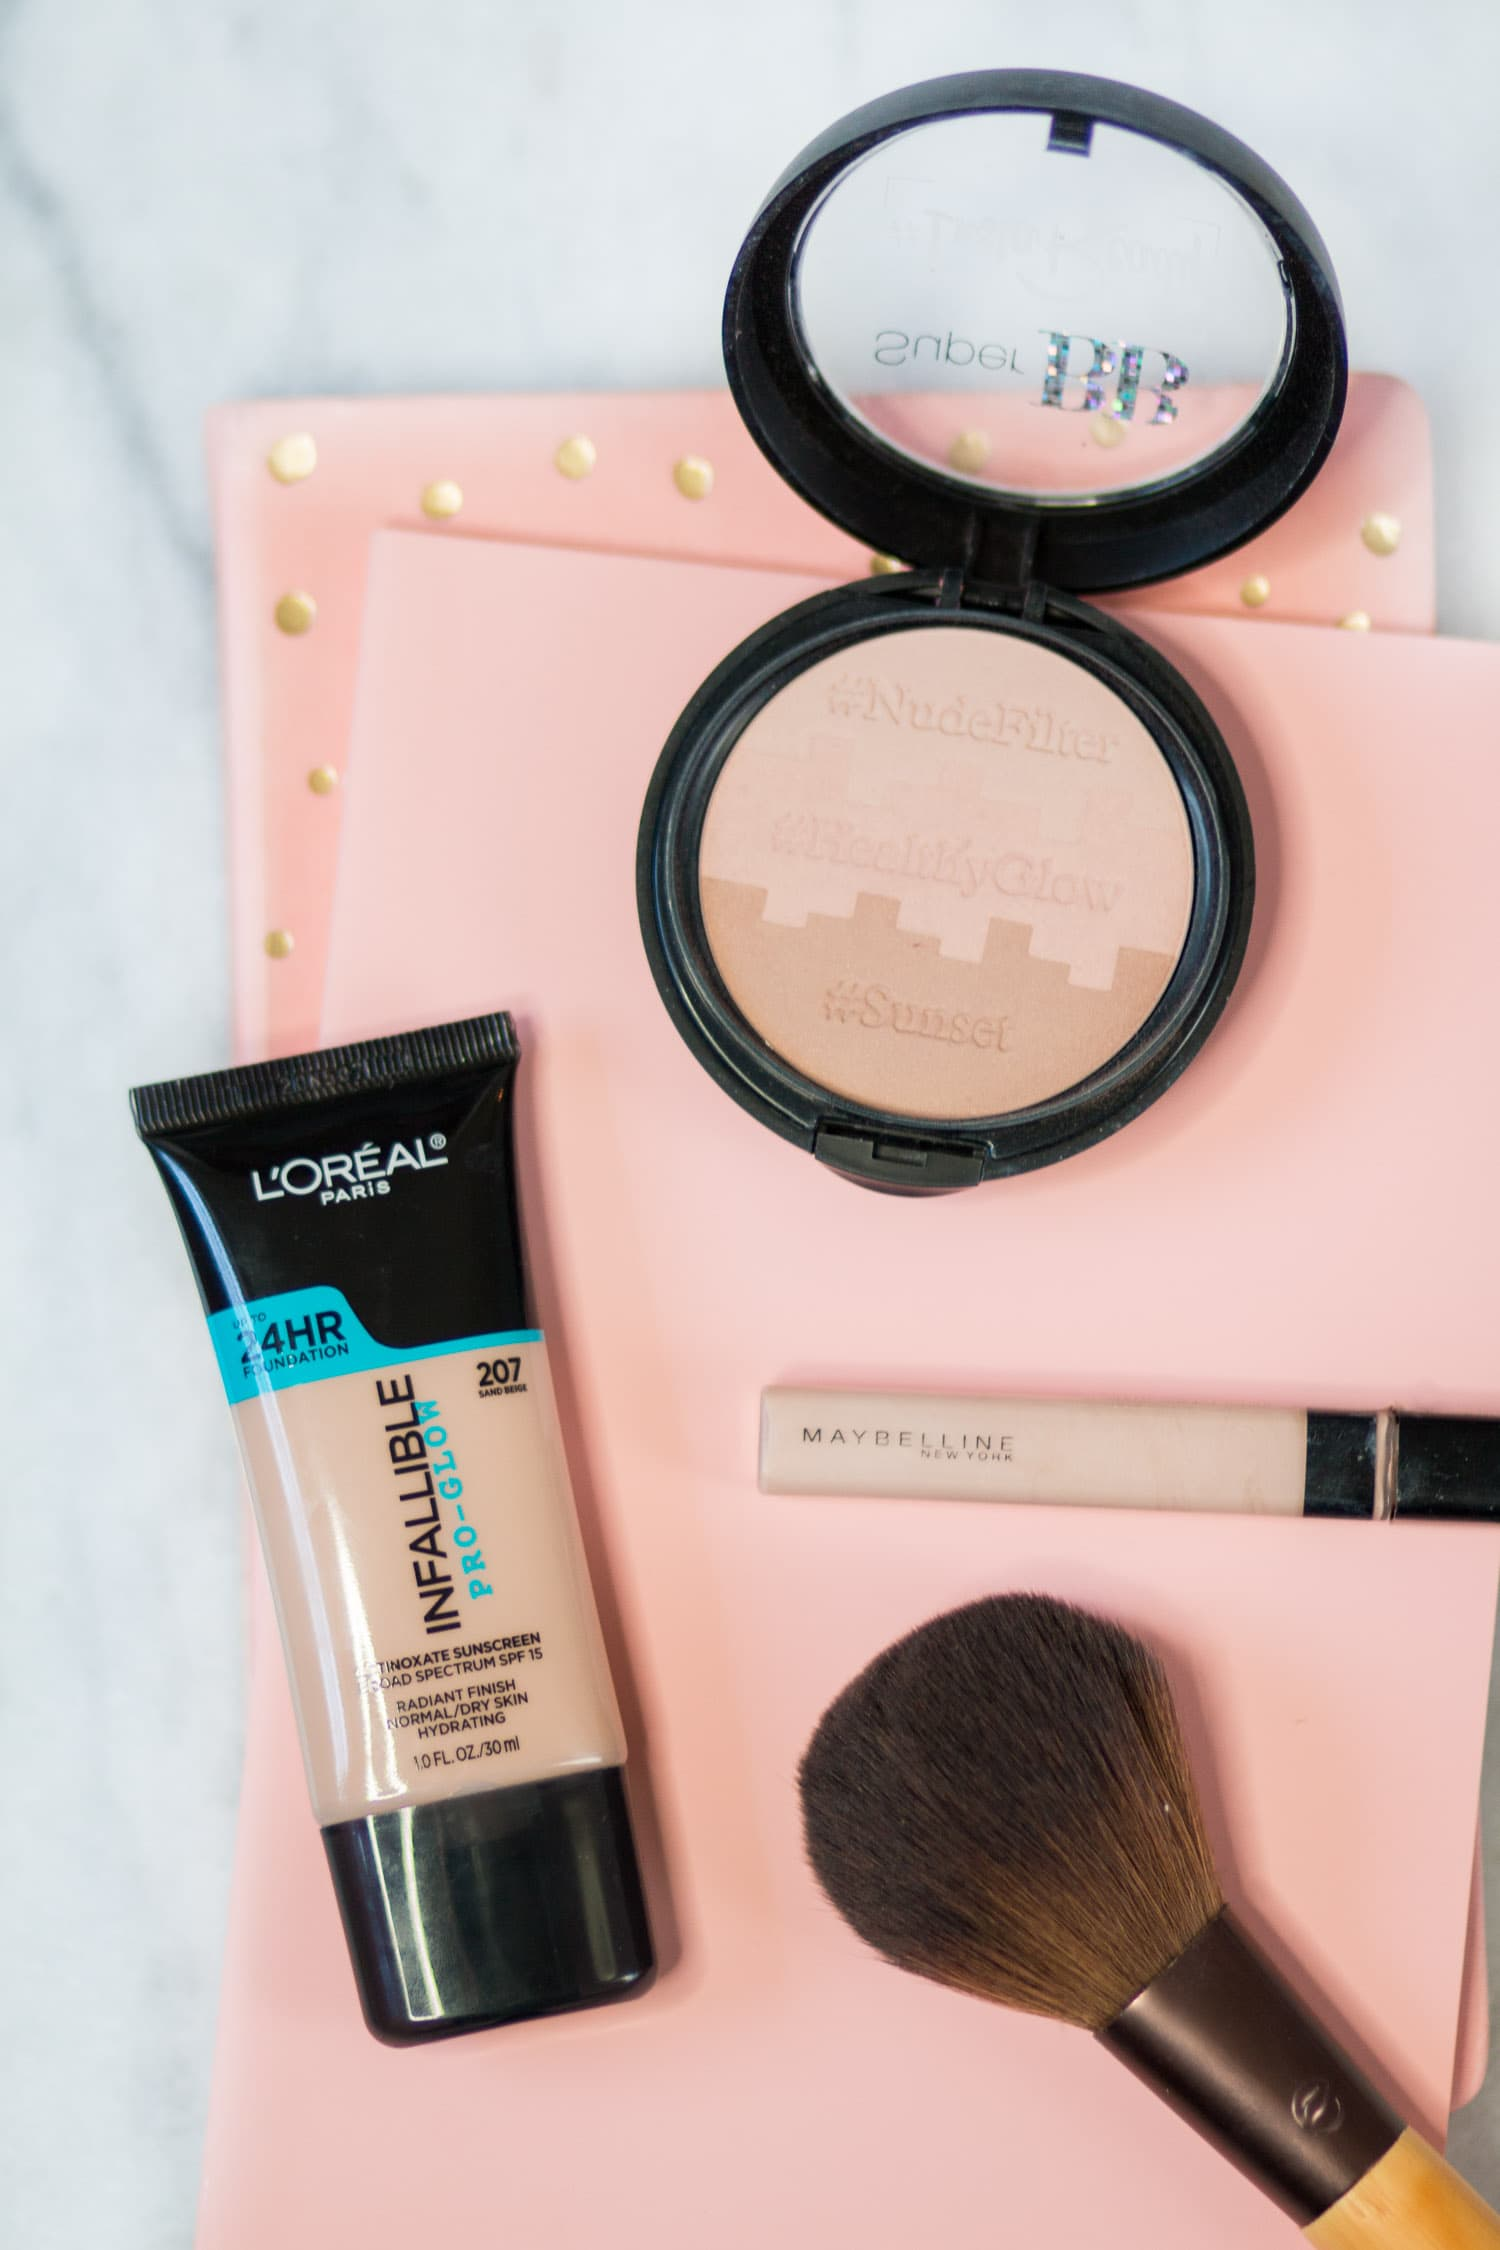 L'Oreal Pro Glow foundation, Maybelline Fit Me concealer, Physicians Formula BB Nude Filter Powder, EcoTools powder brush | Easy pumpkin spice makeup tutorial featuring all drugstore makeup by beauty blogger Ashley Brooke Nicholas